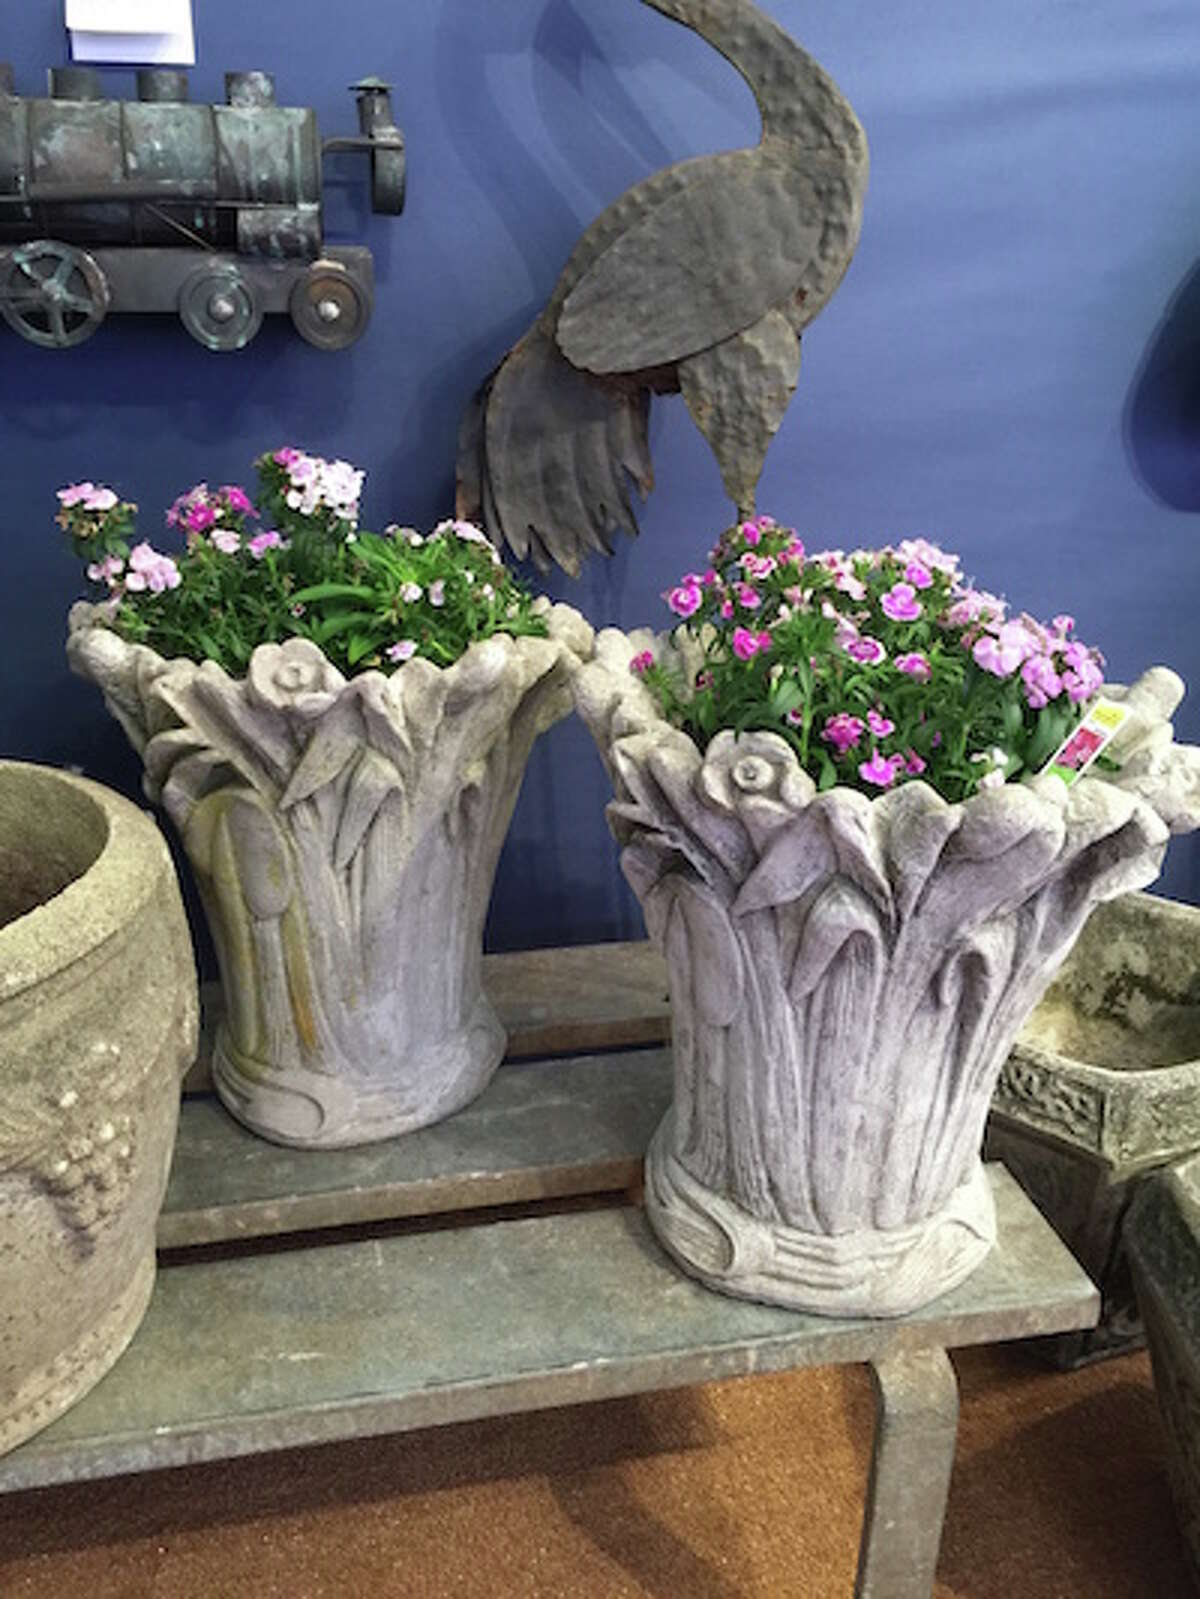 Garden urns offered at last year's show.